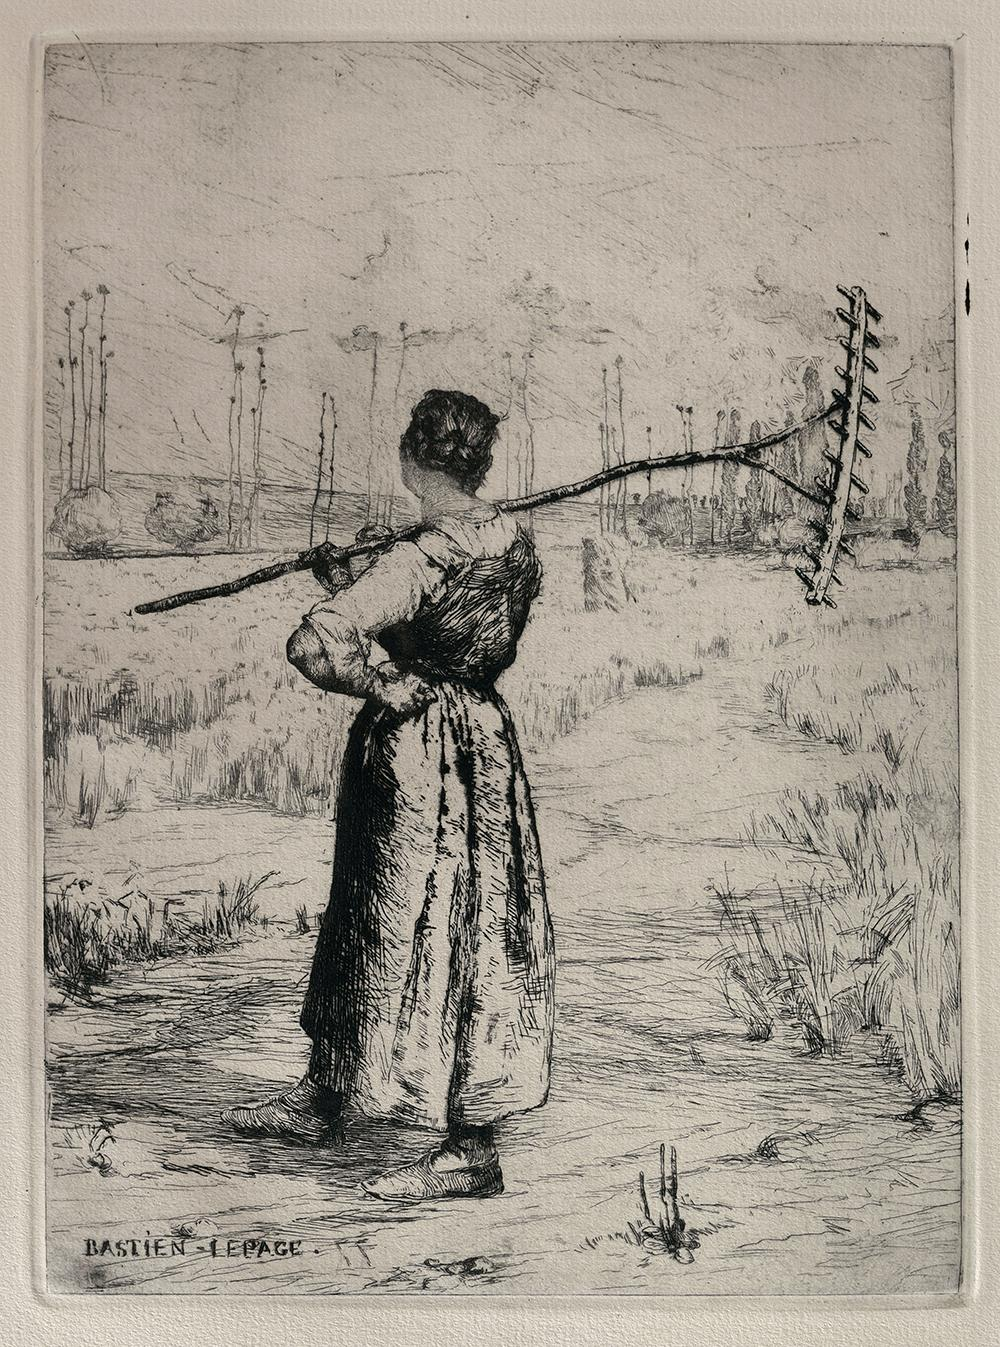 Pen and ink drawing of European farm woman standing in a field